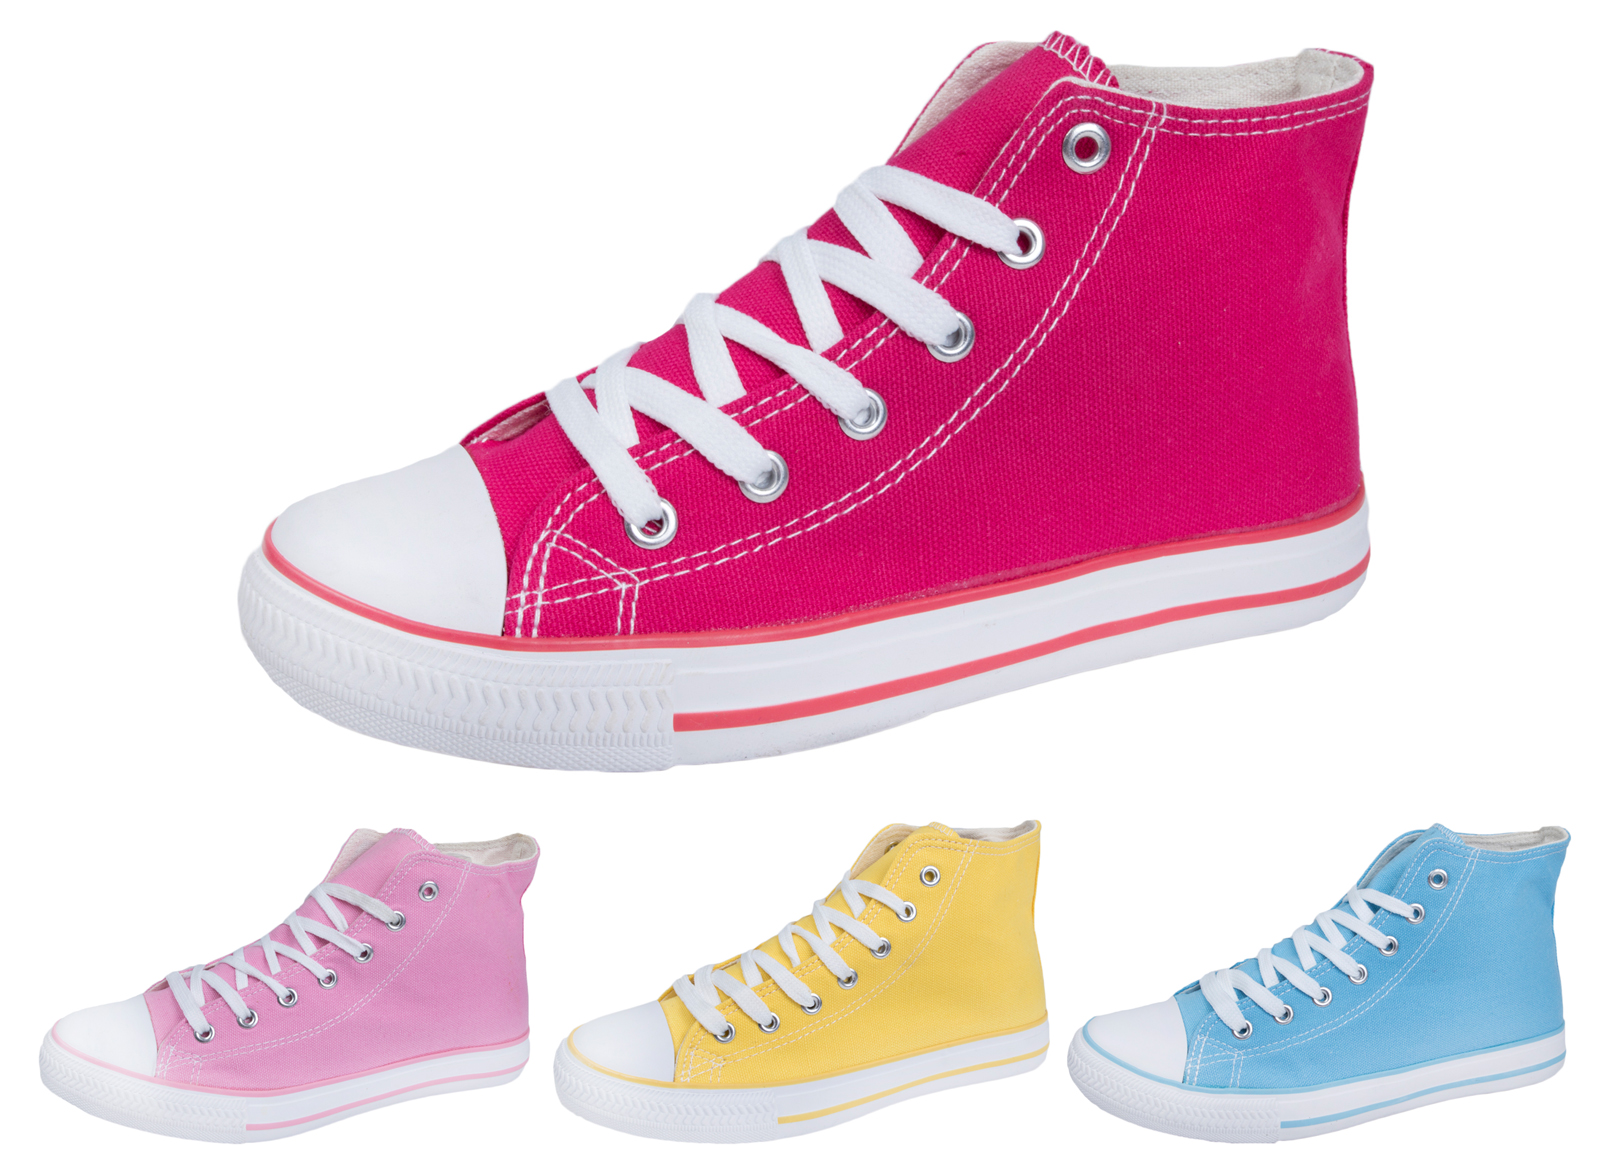 Girls Boys Kids ToddlerTrainers Casual Plimsolls Lace Up Flat Pumps